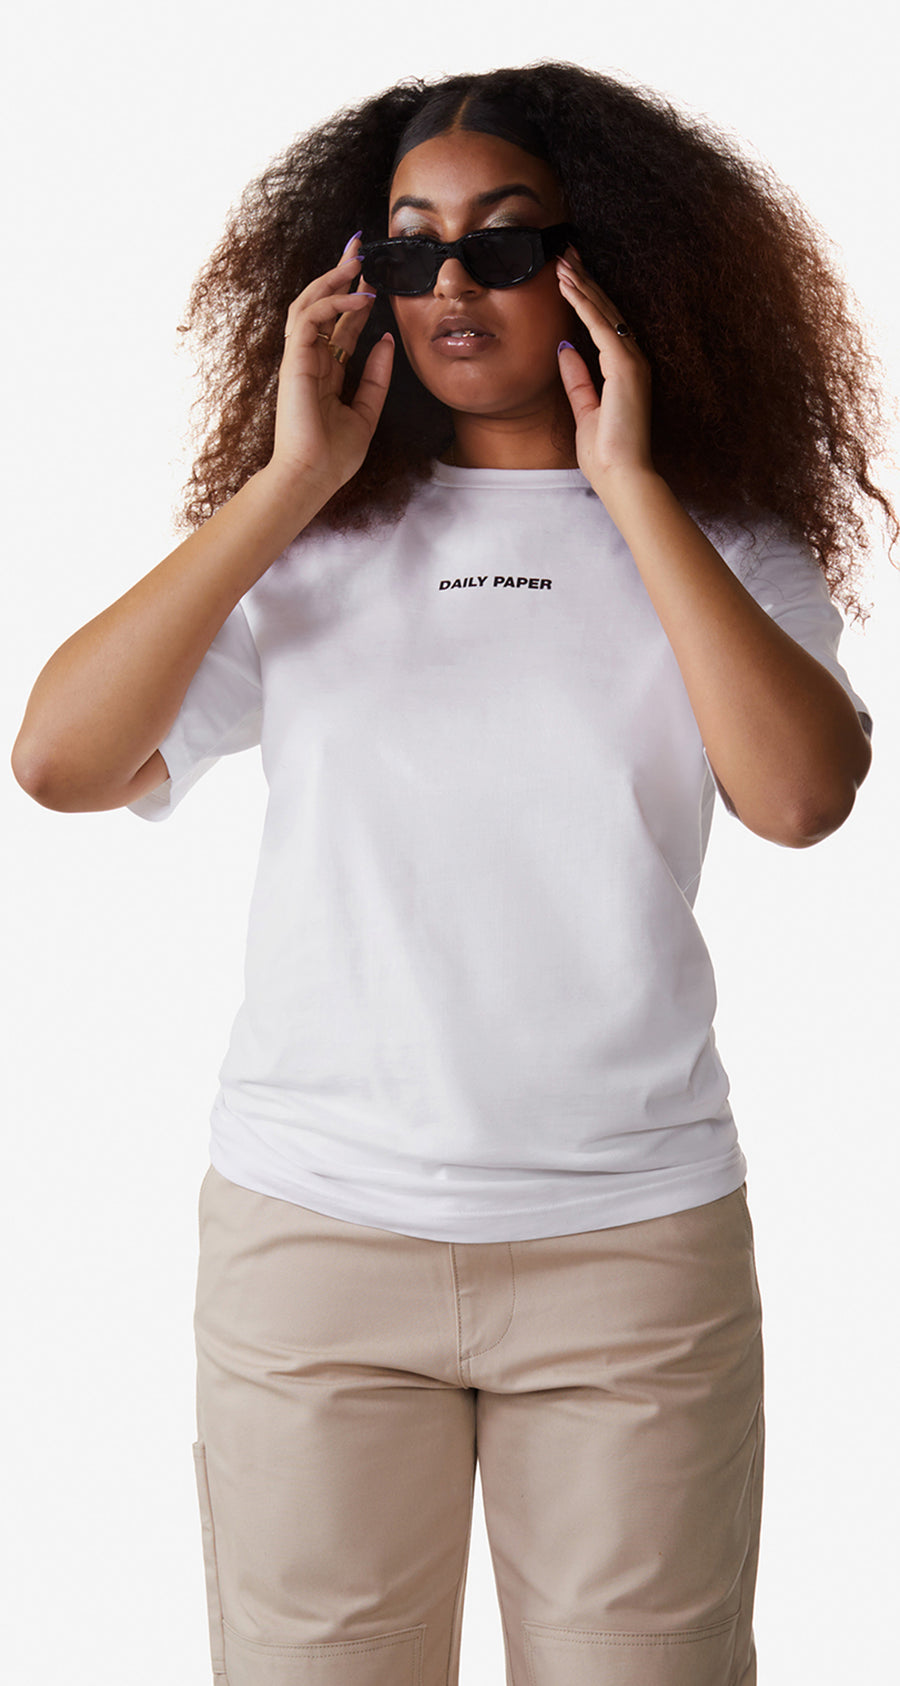 Daily Paper - White Remulti T-Shirt - Women Rear